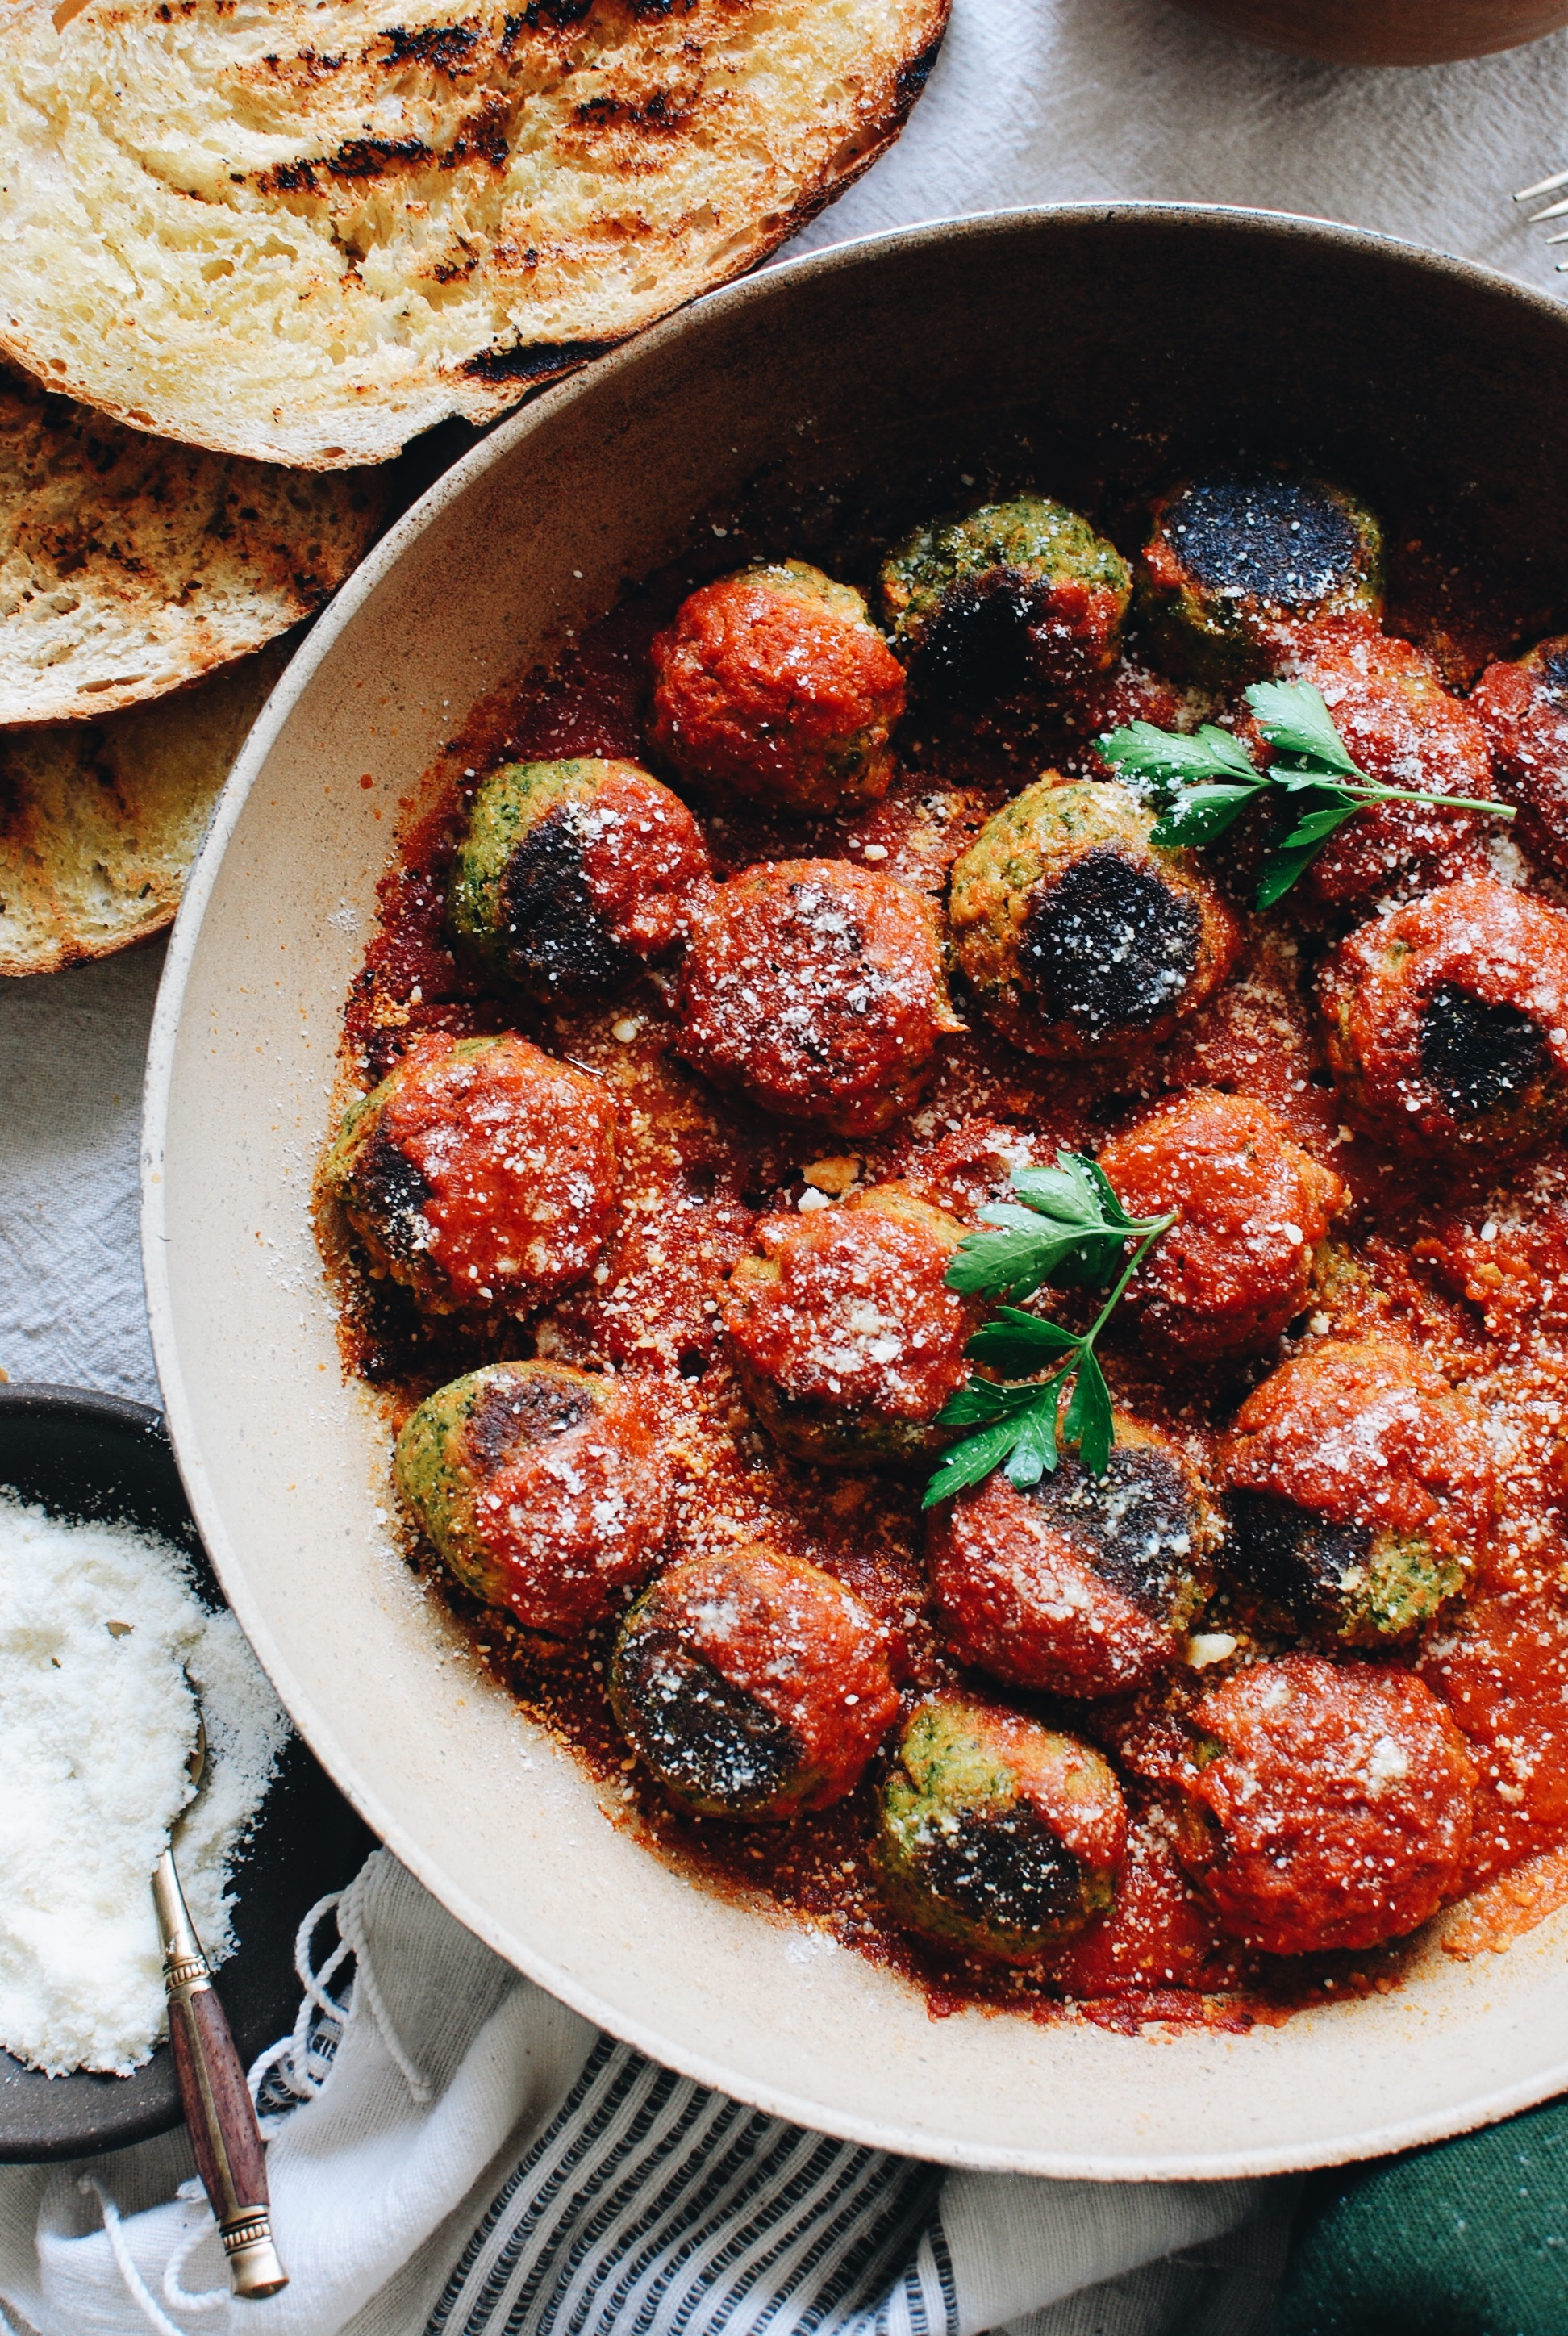 Vegetarian Meatballs with Grilled Bread / Bev Cooks